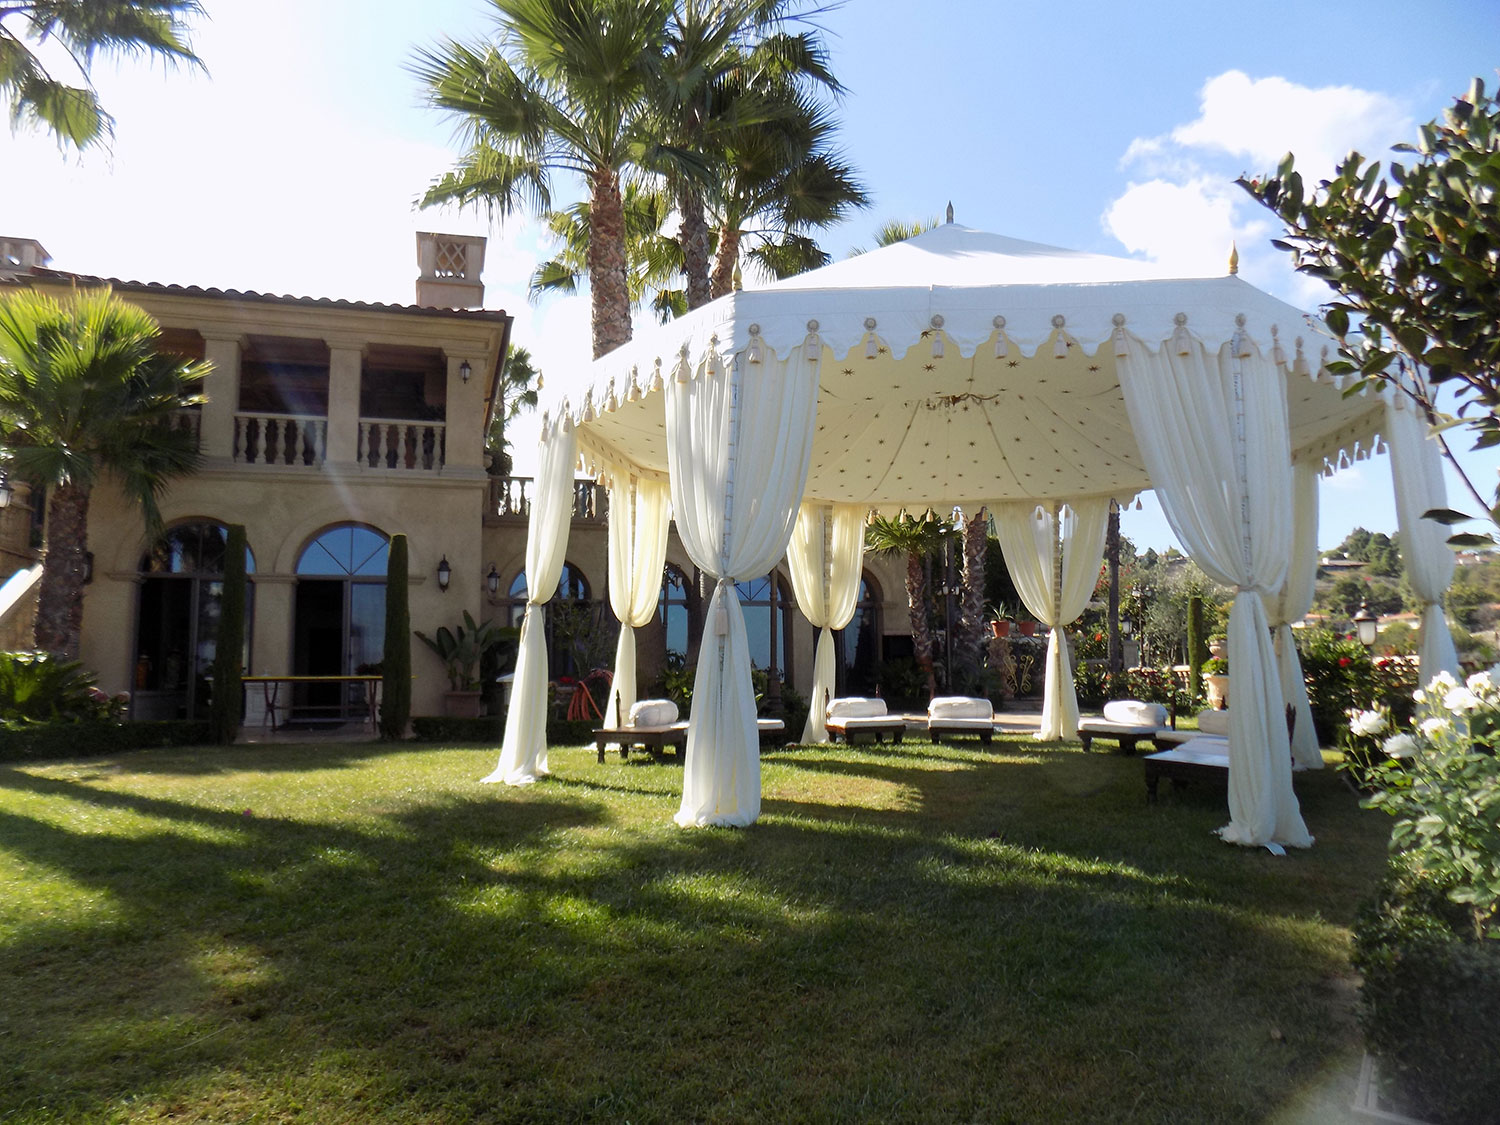 raj-tents-old-hollywood-theme-grand-pavilion.jpg